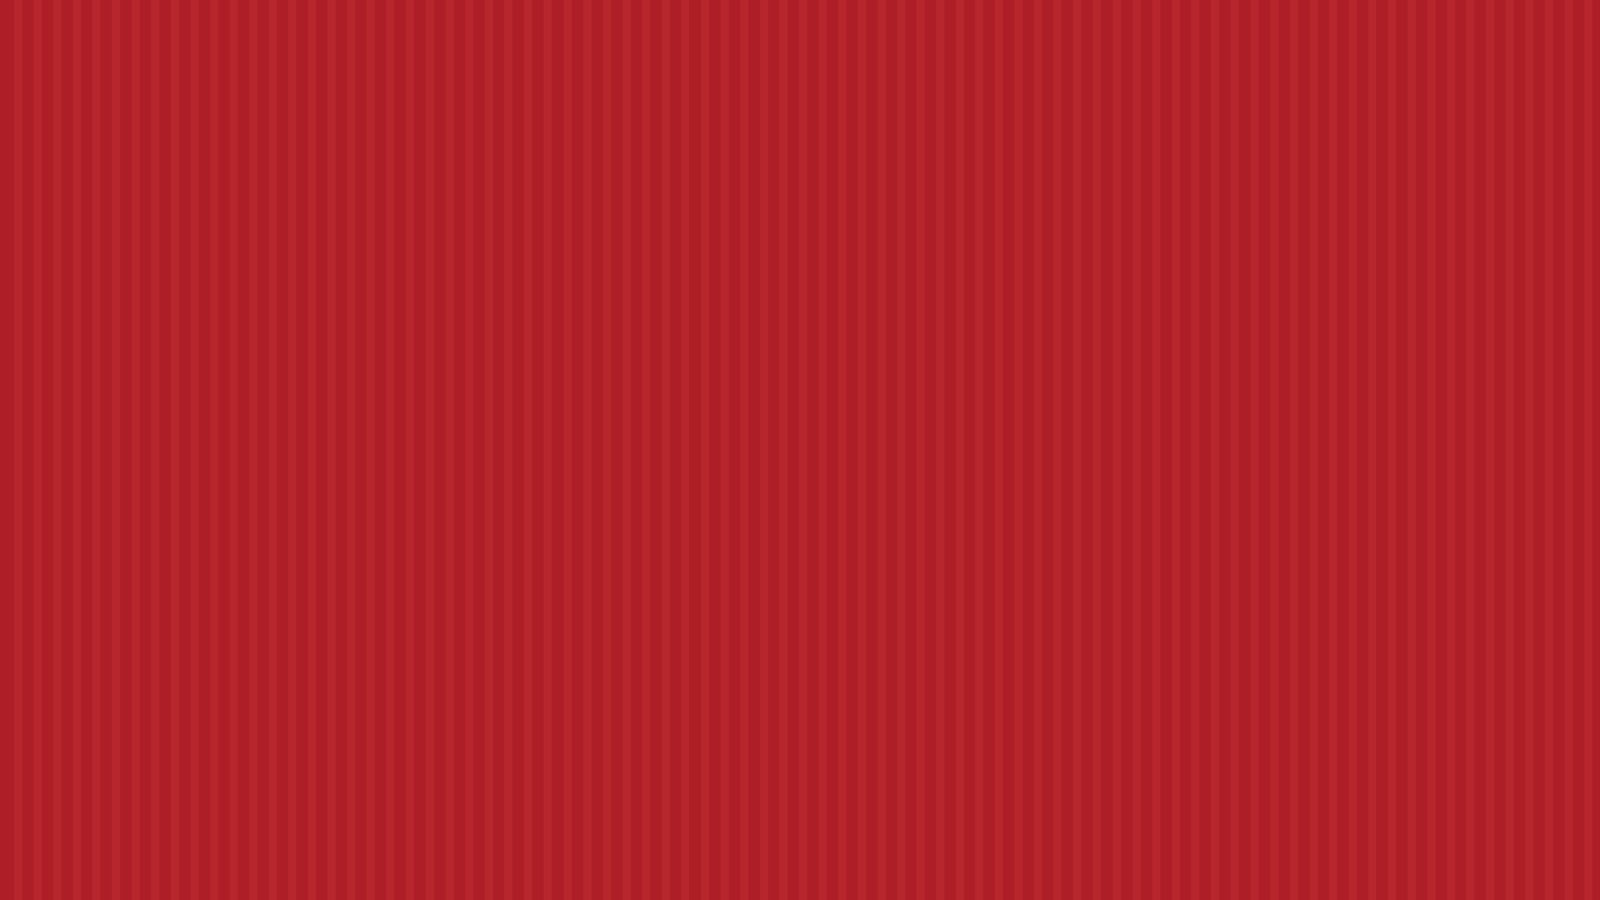 Solid Red Backgrounds wallpaper Solid Red Backgrounds hd 1600x900